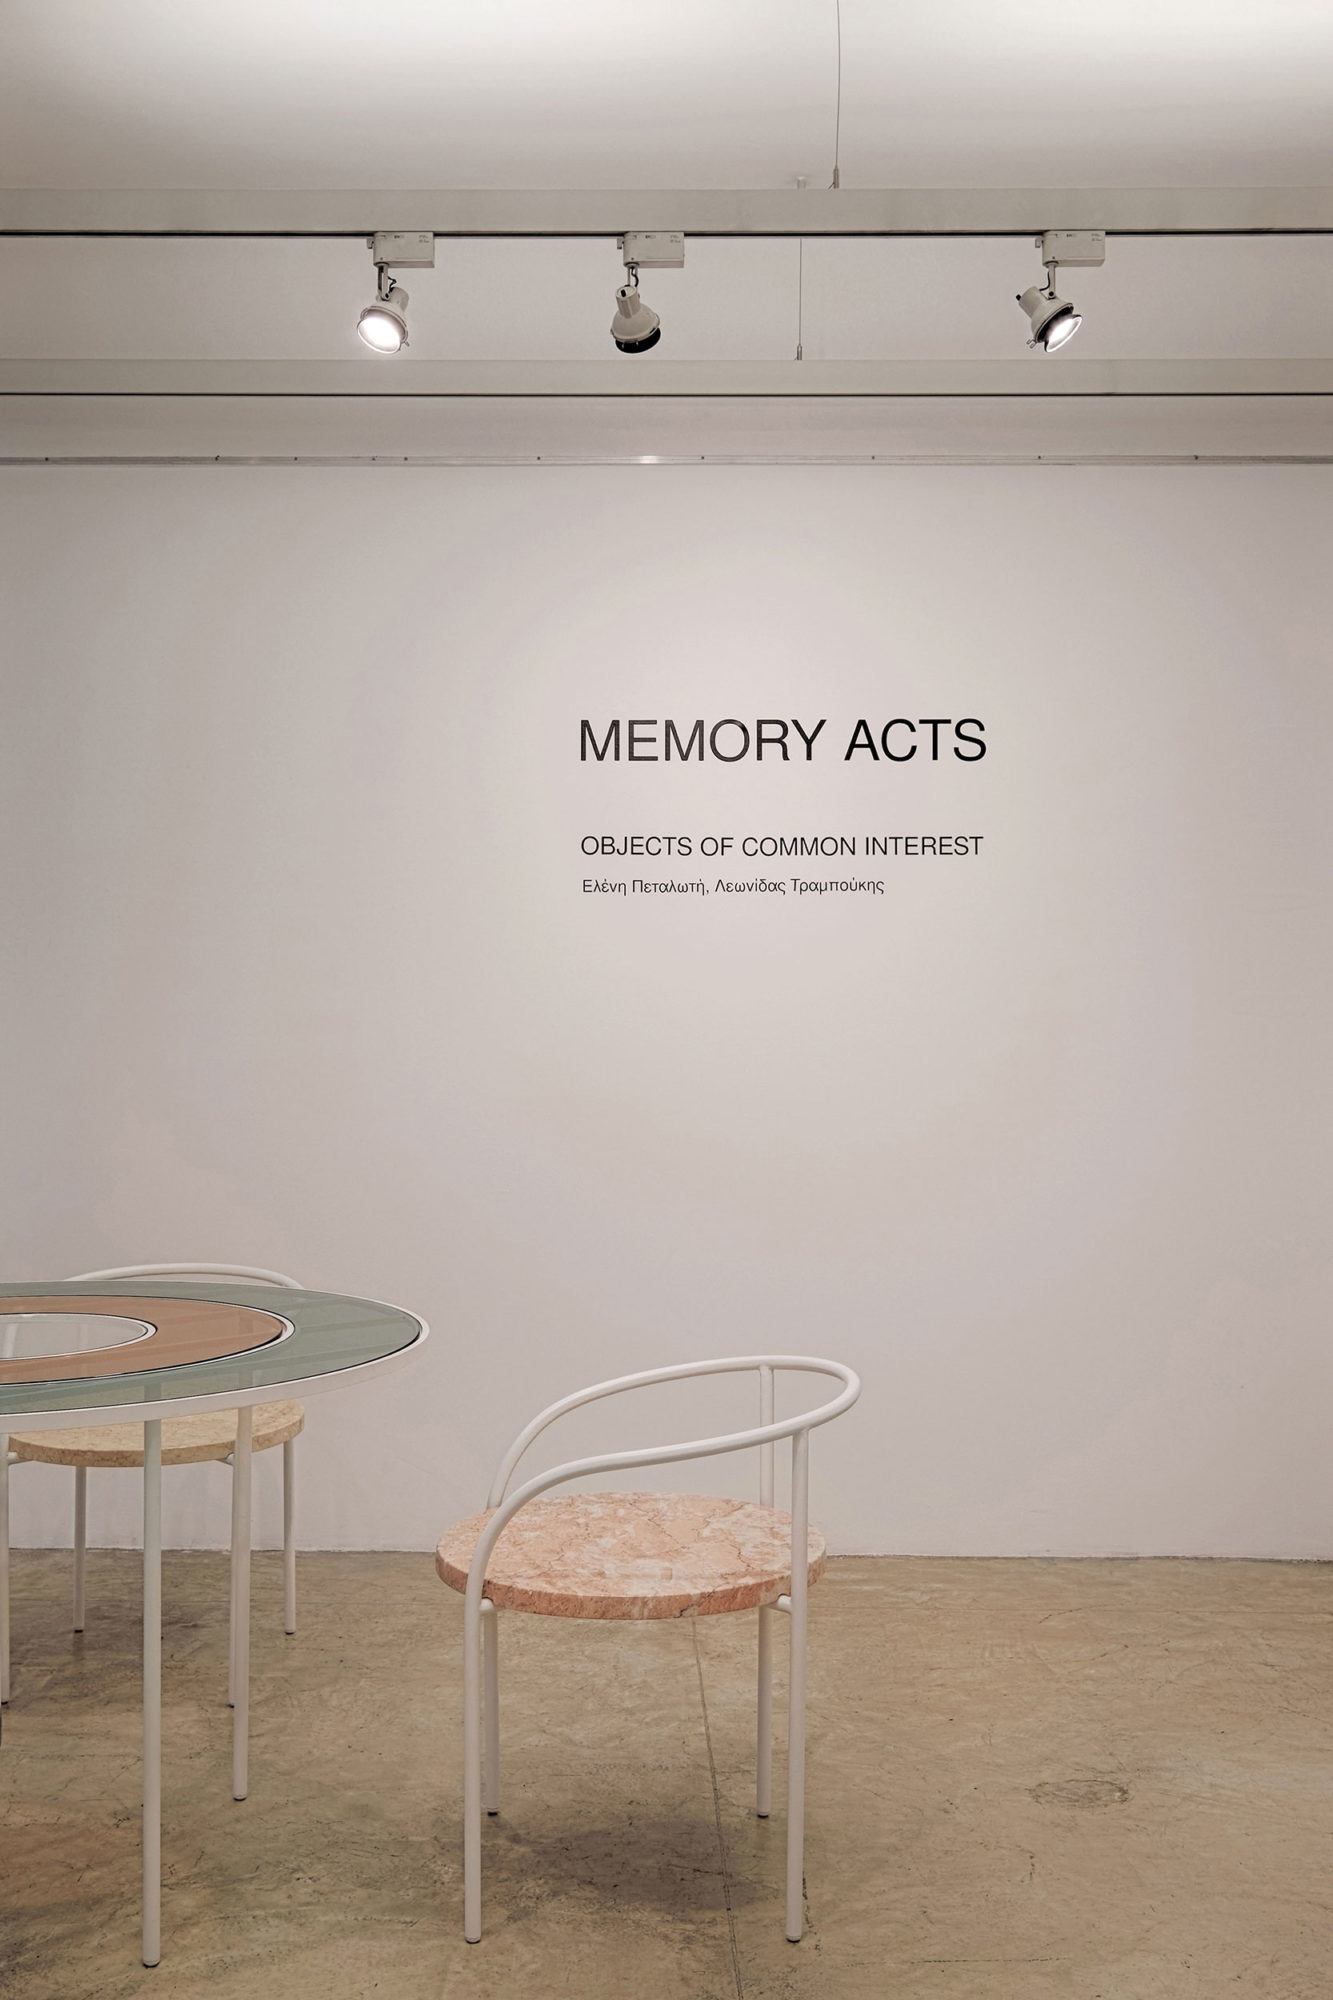 Memory Acts